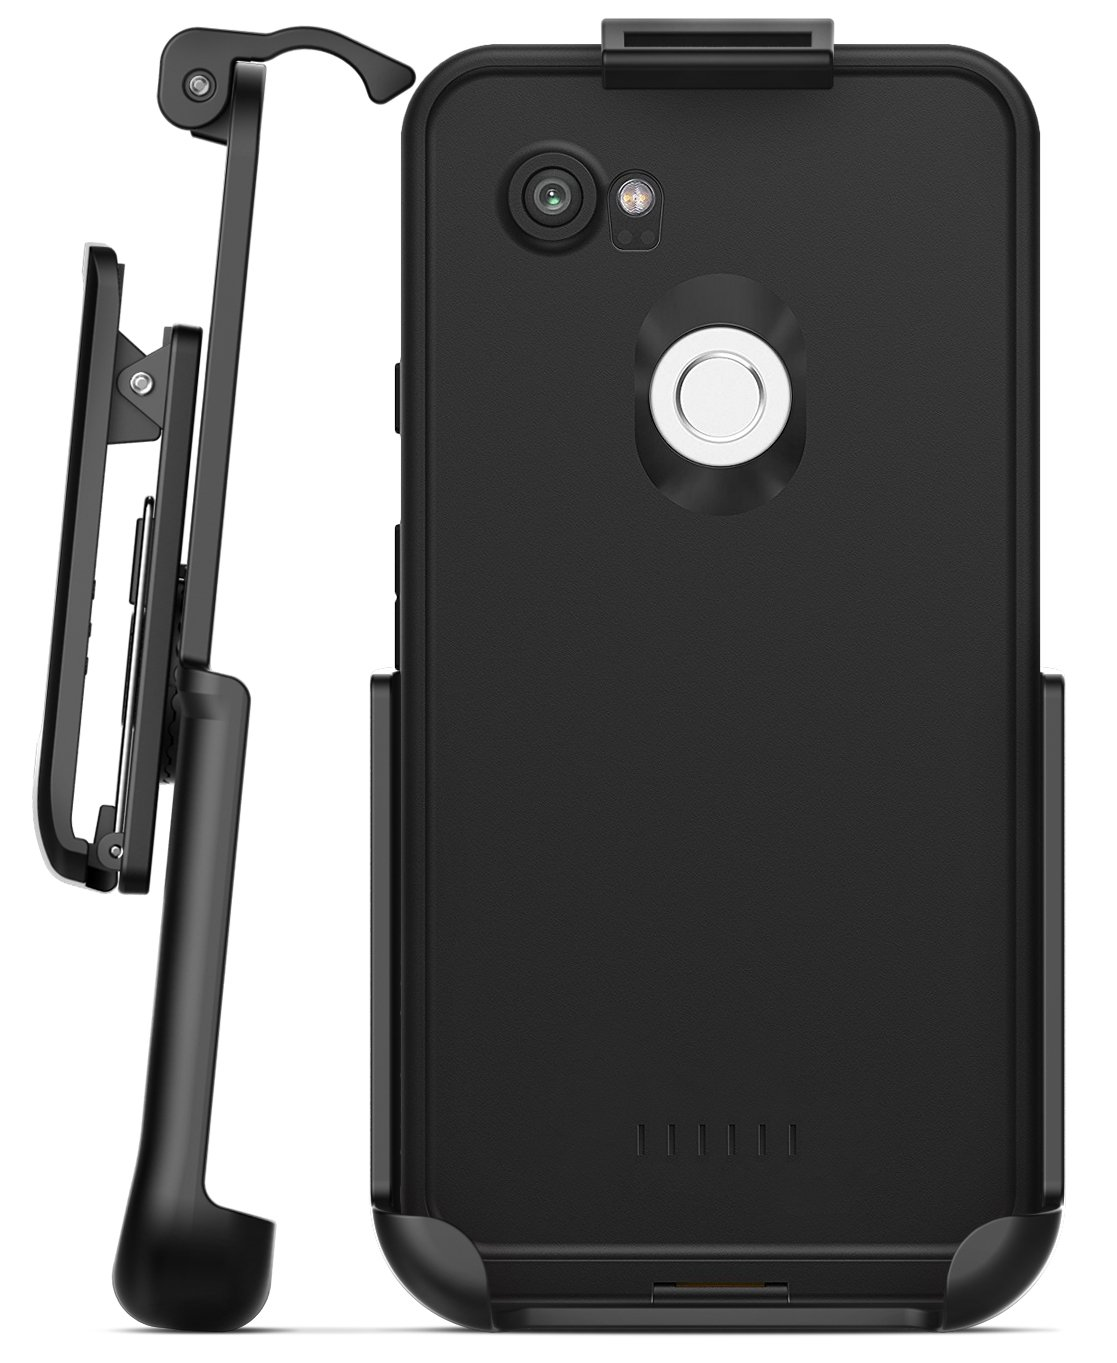 on sale df1e8 22c6f Encased Belt Clip Holster for Lifeproof Fre Case - Google Pixel 2 XL (case  not Included)